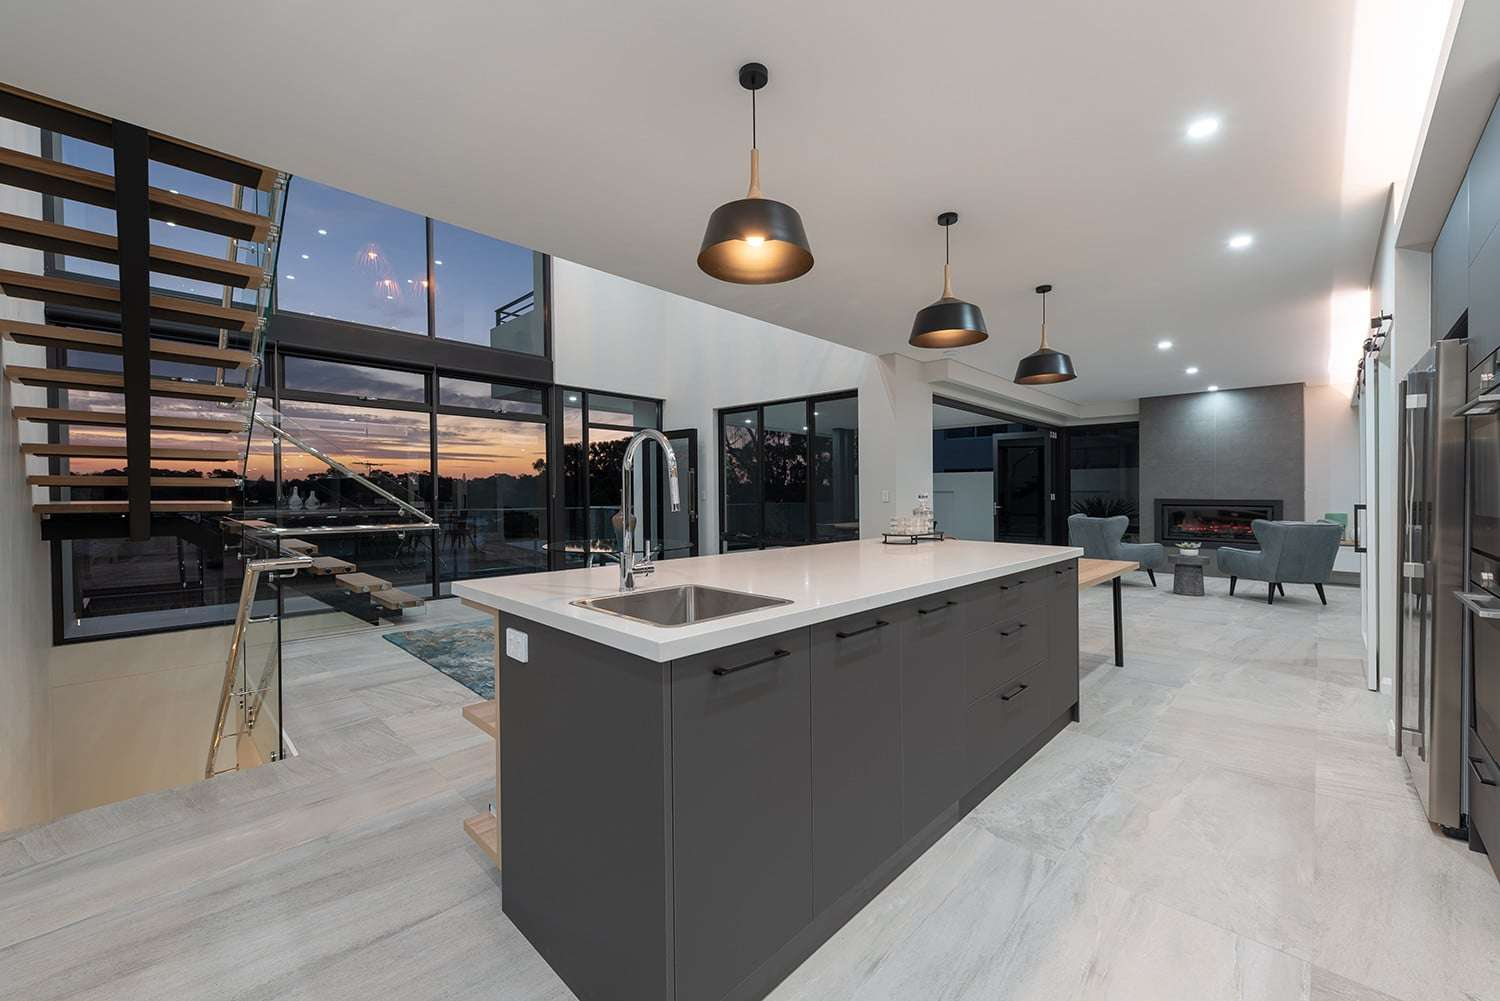 Expansive views from the impressive kitchen and adjacent dining room, with feature gas fireplace